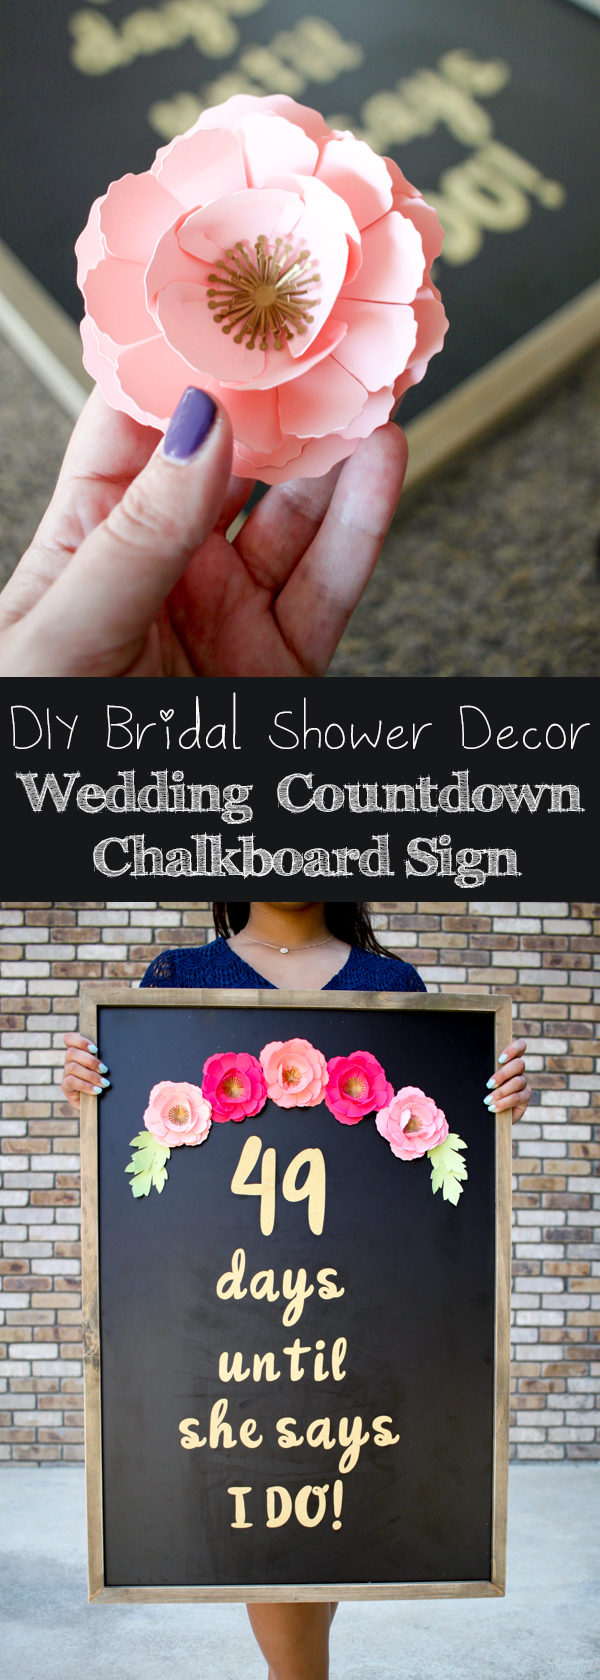 DIY Bridal Shower Decor with Cricut - Wedding Day Countdown Chalkboard Sign